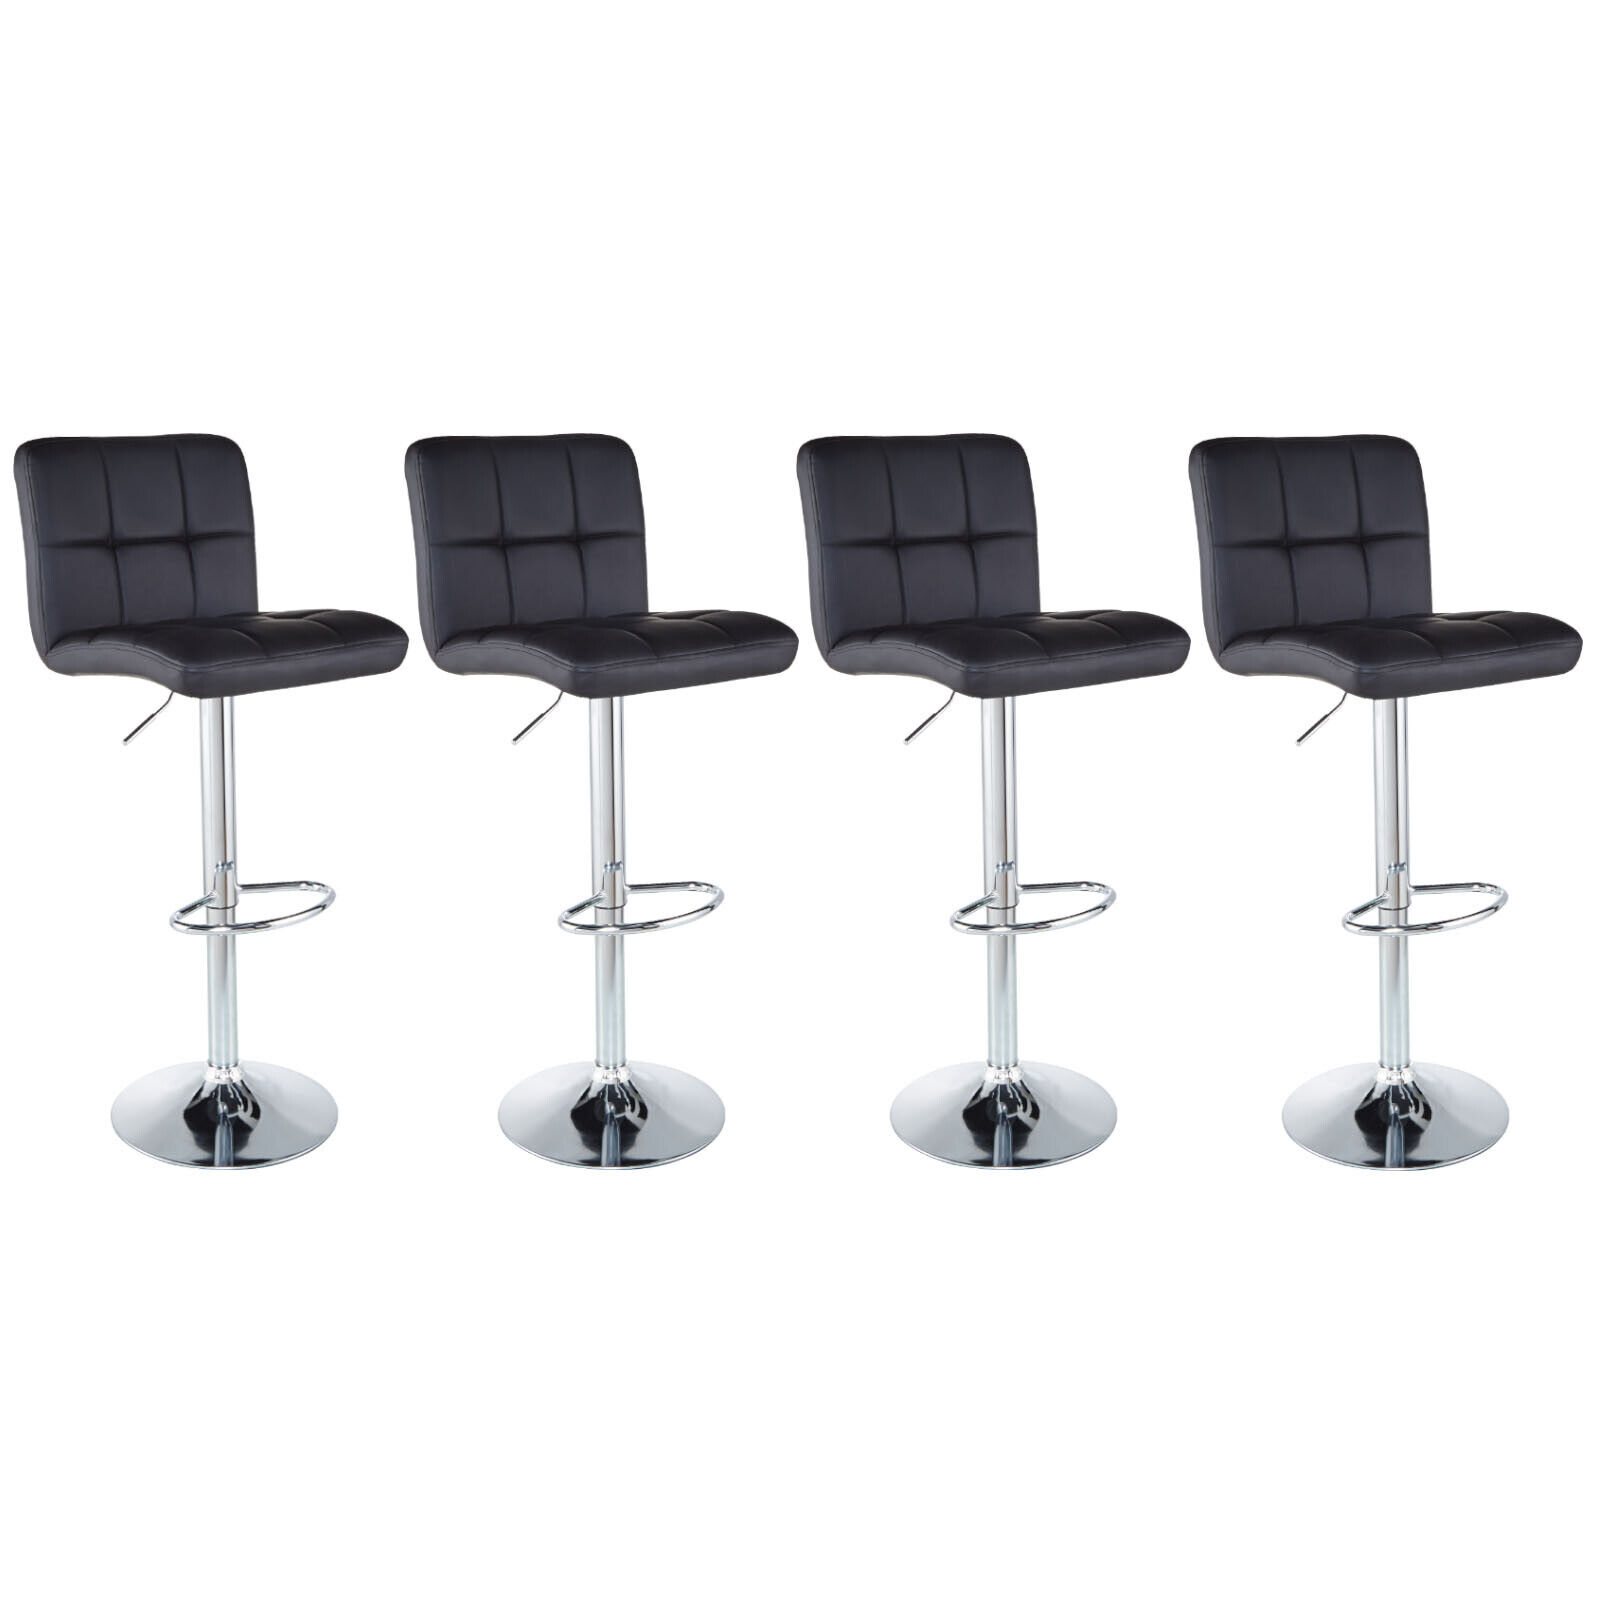 Swell Set Of 4 Counter Height Pu Leather Bar Stools Adjustable Swivel Pub Chairs Black Gamerscity Chair Design For Home Gamerscityorg